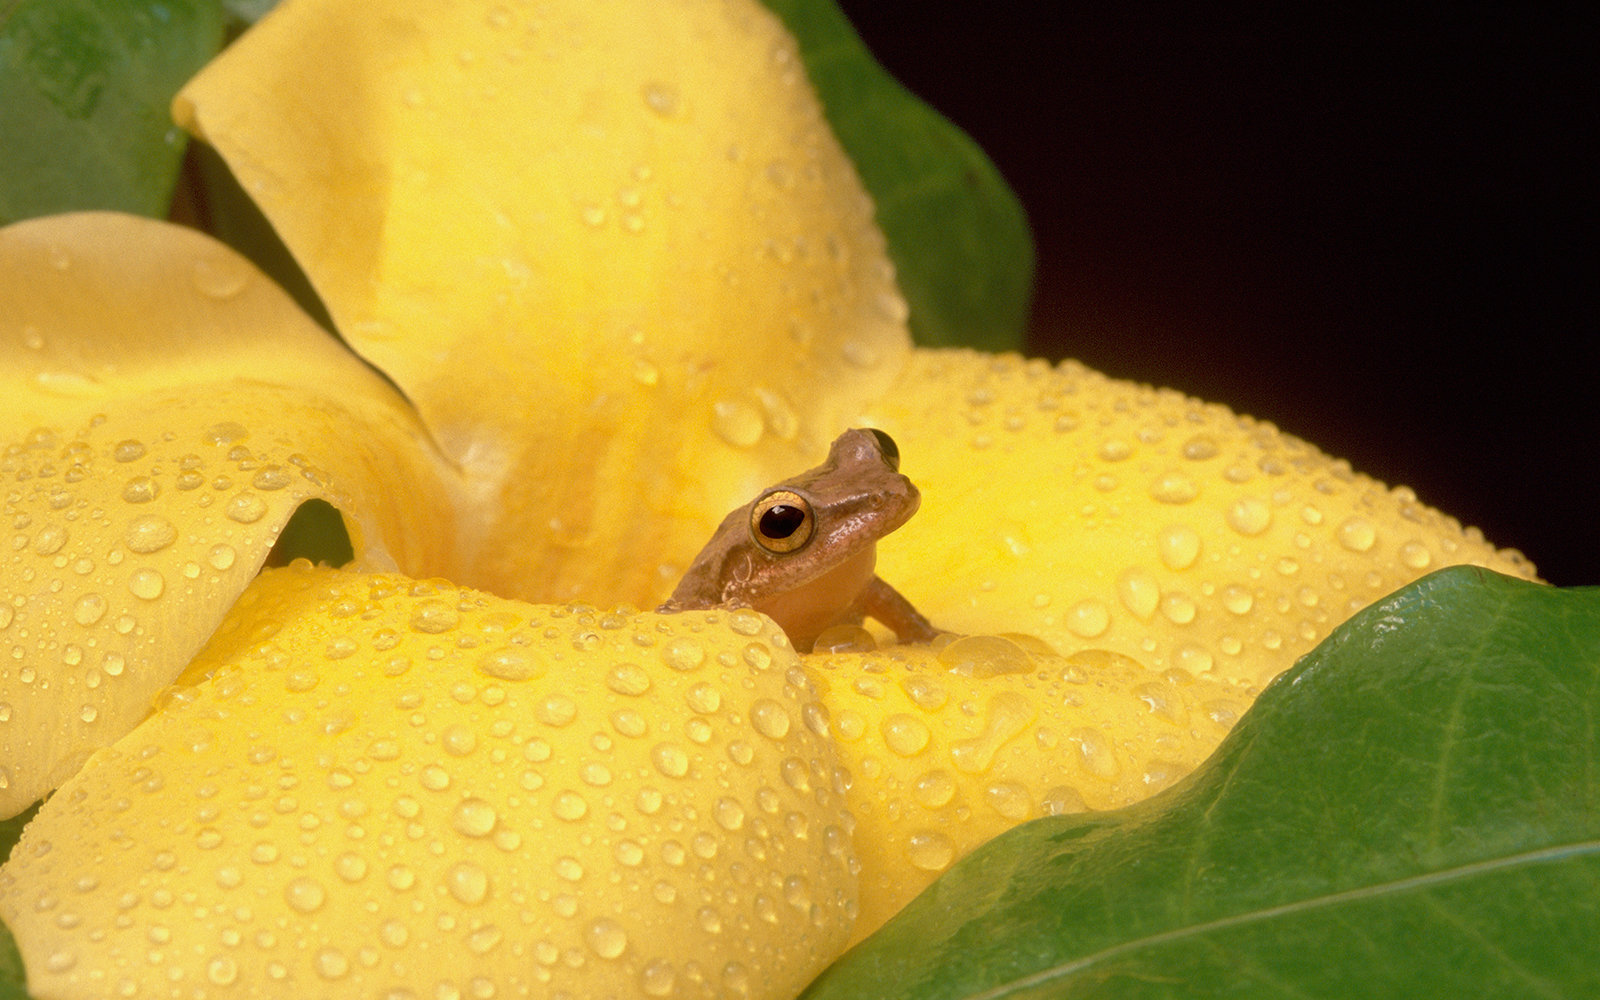 Beloved to all Puerto Ricans, a tiny coqui treefrog peeks from a rain-soaked canario flower, also known as Allamandra, yellow bell, or golden trumpet flower, an ornamental native to South and Central America.